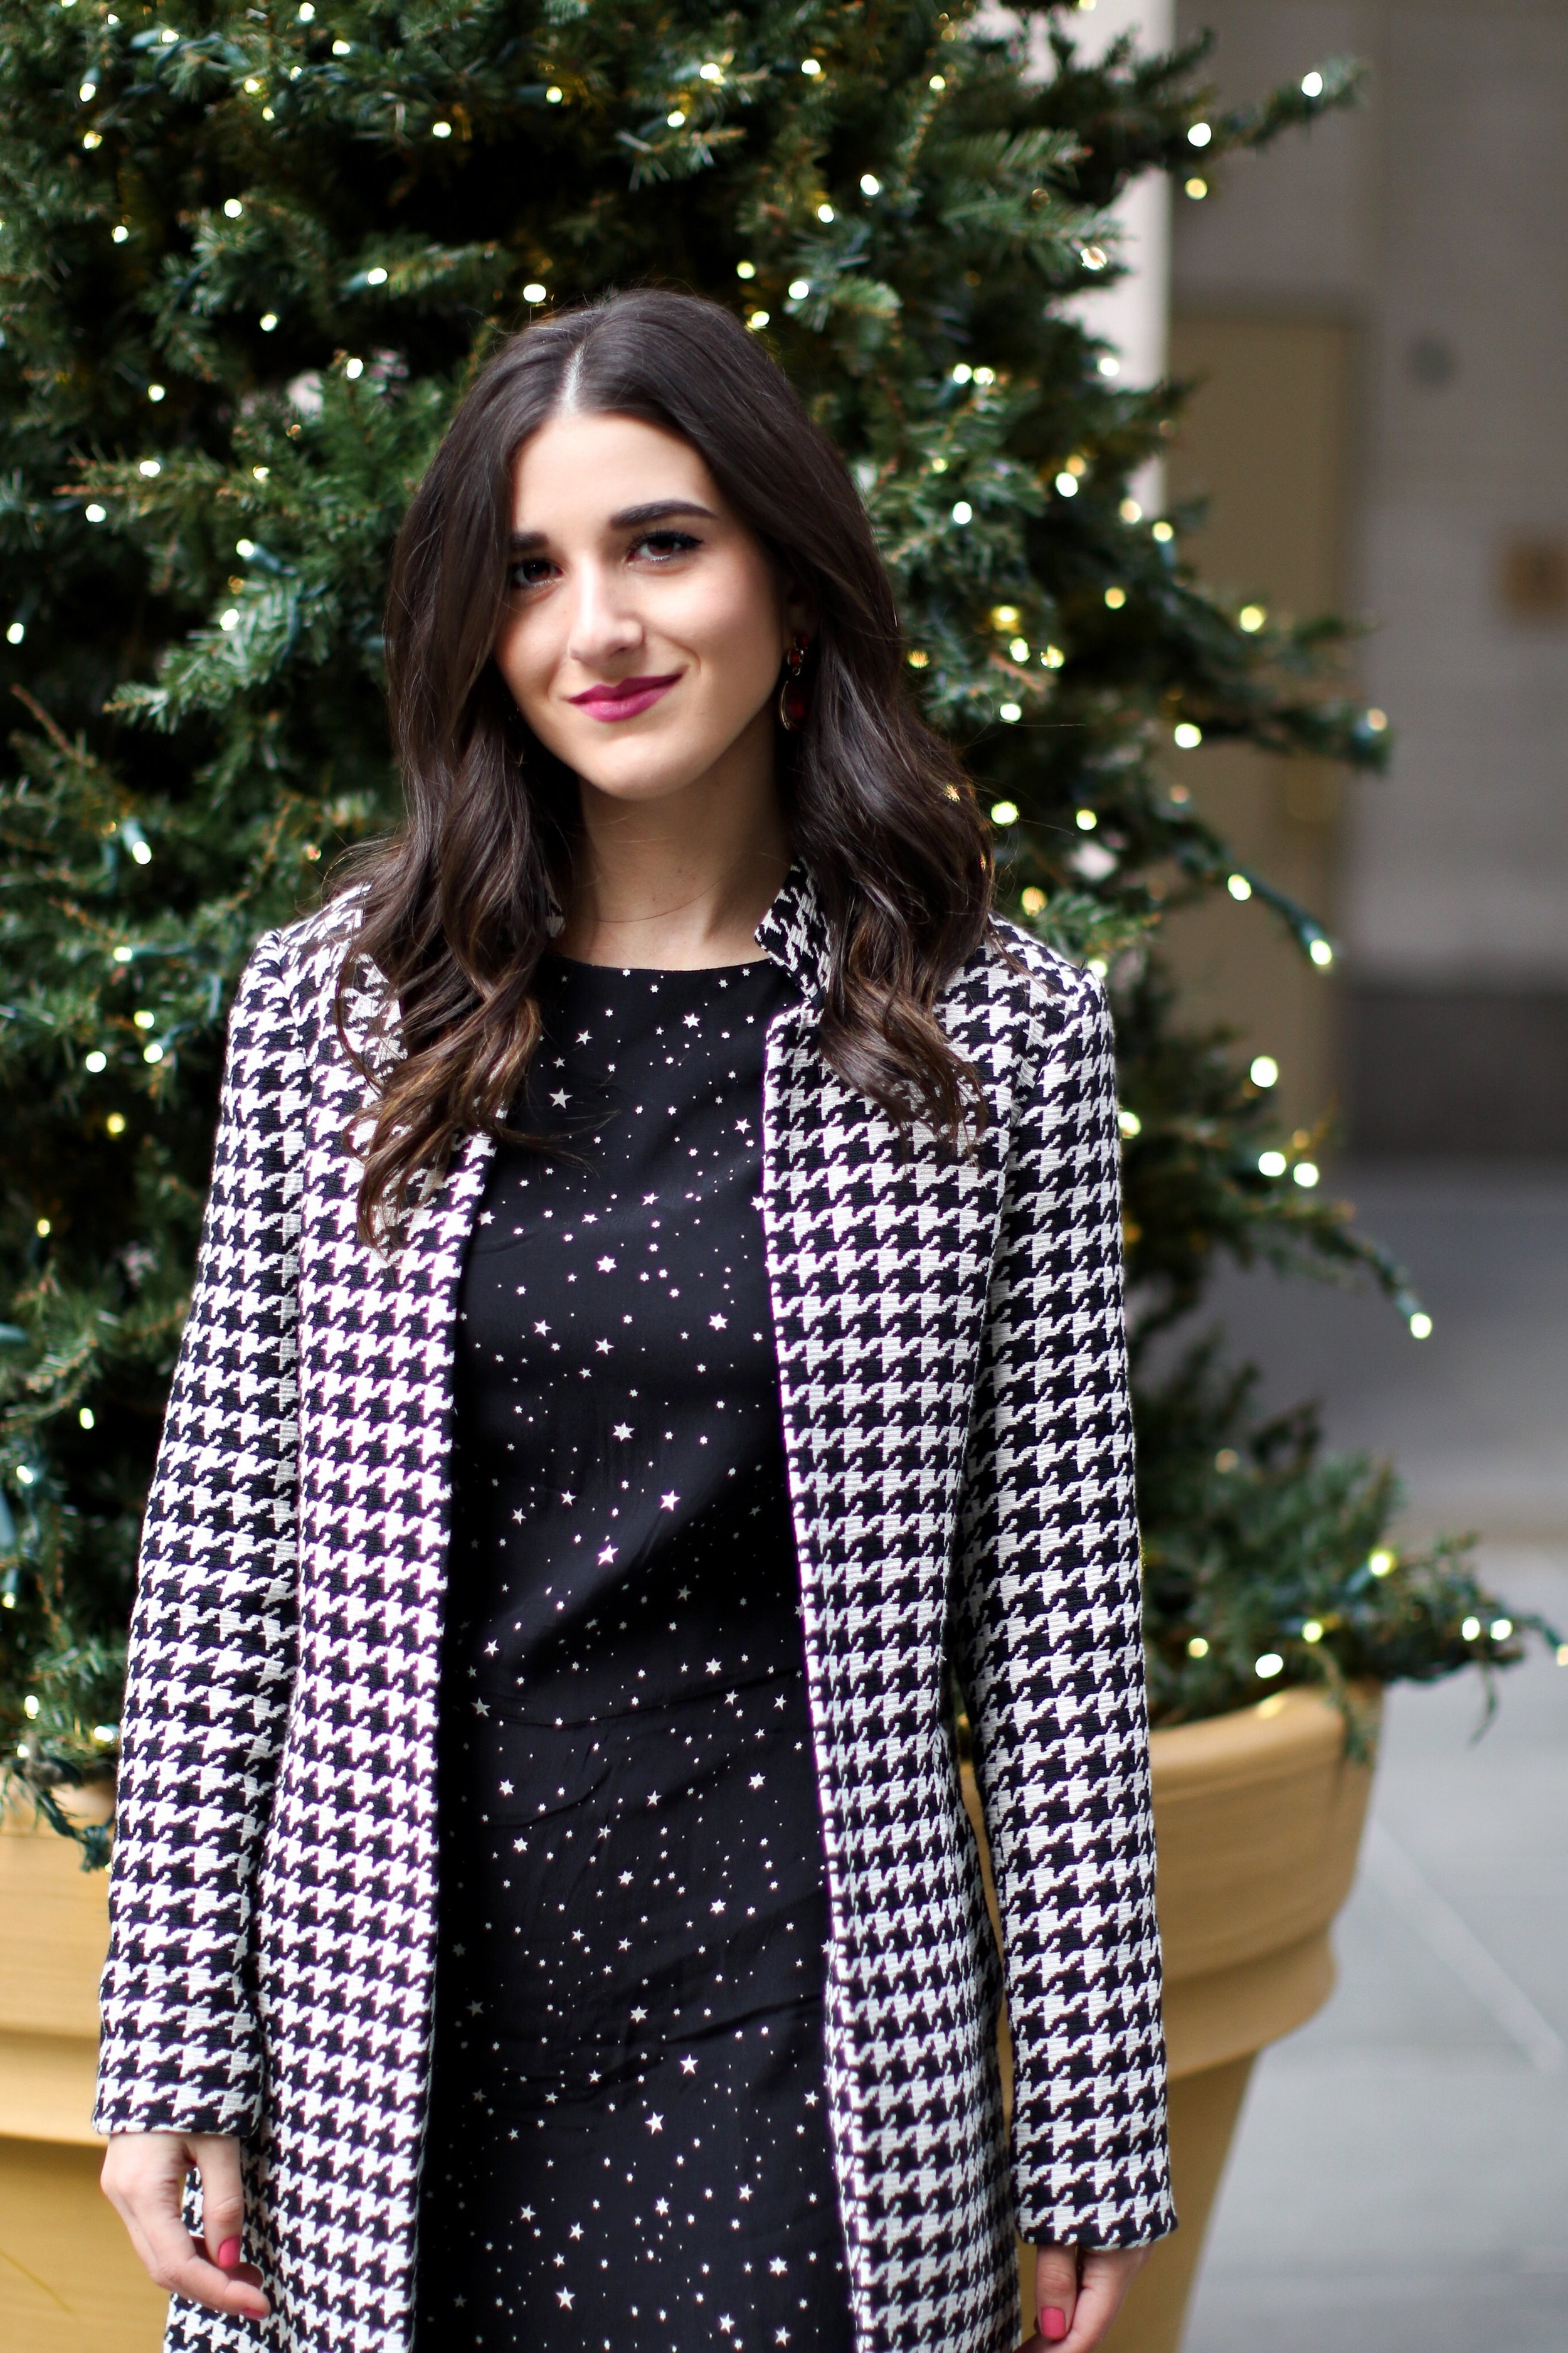 Houndstooth Coat White Booties The Pros And Cons Of Freelancing Esther Santer Fashion Blog NYC Street Style Blogger Outfit OOTD Trendy Holiday Season New York City Photoshoot Pretty Hair Black Star Dress Cute Shoes Winter Women Shop Wear H&M Zara Girl.jpg